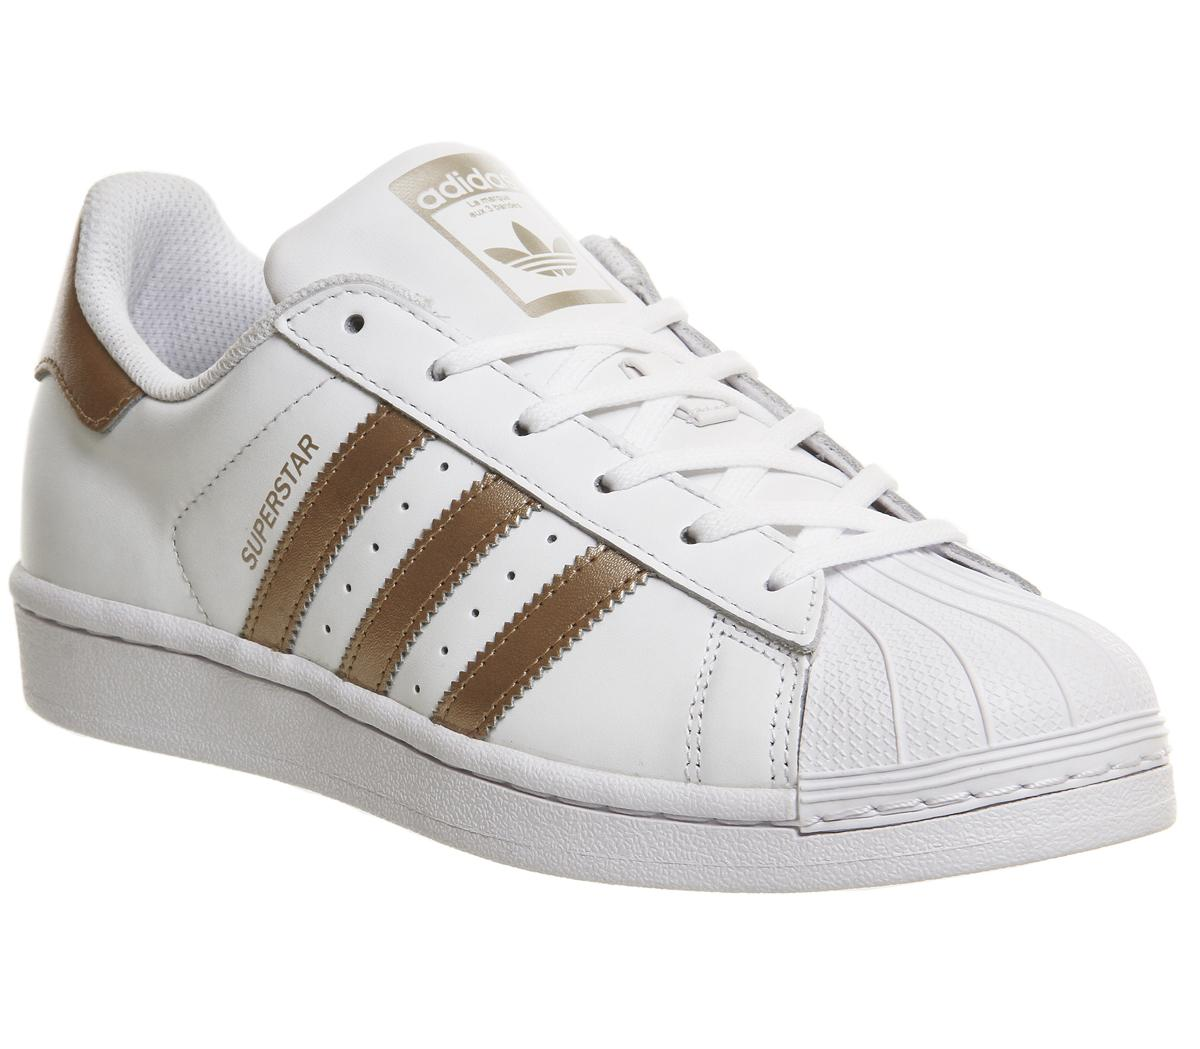 Asesorar Museo veredicto  adidas Superstar 1 White Copper - Hers trainers